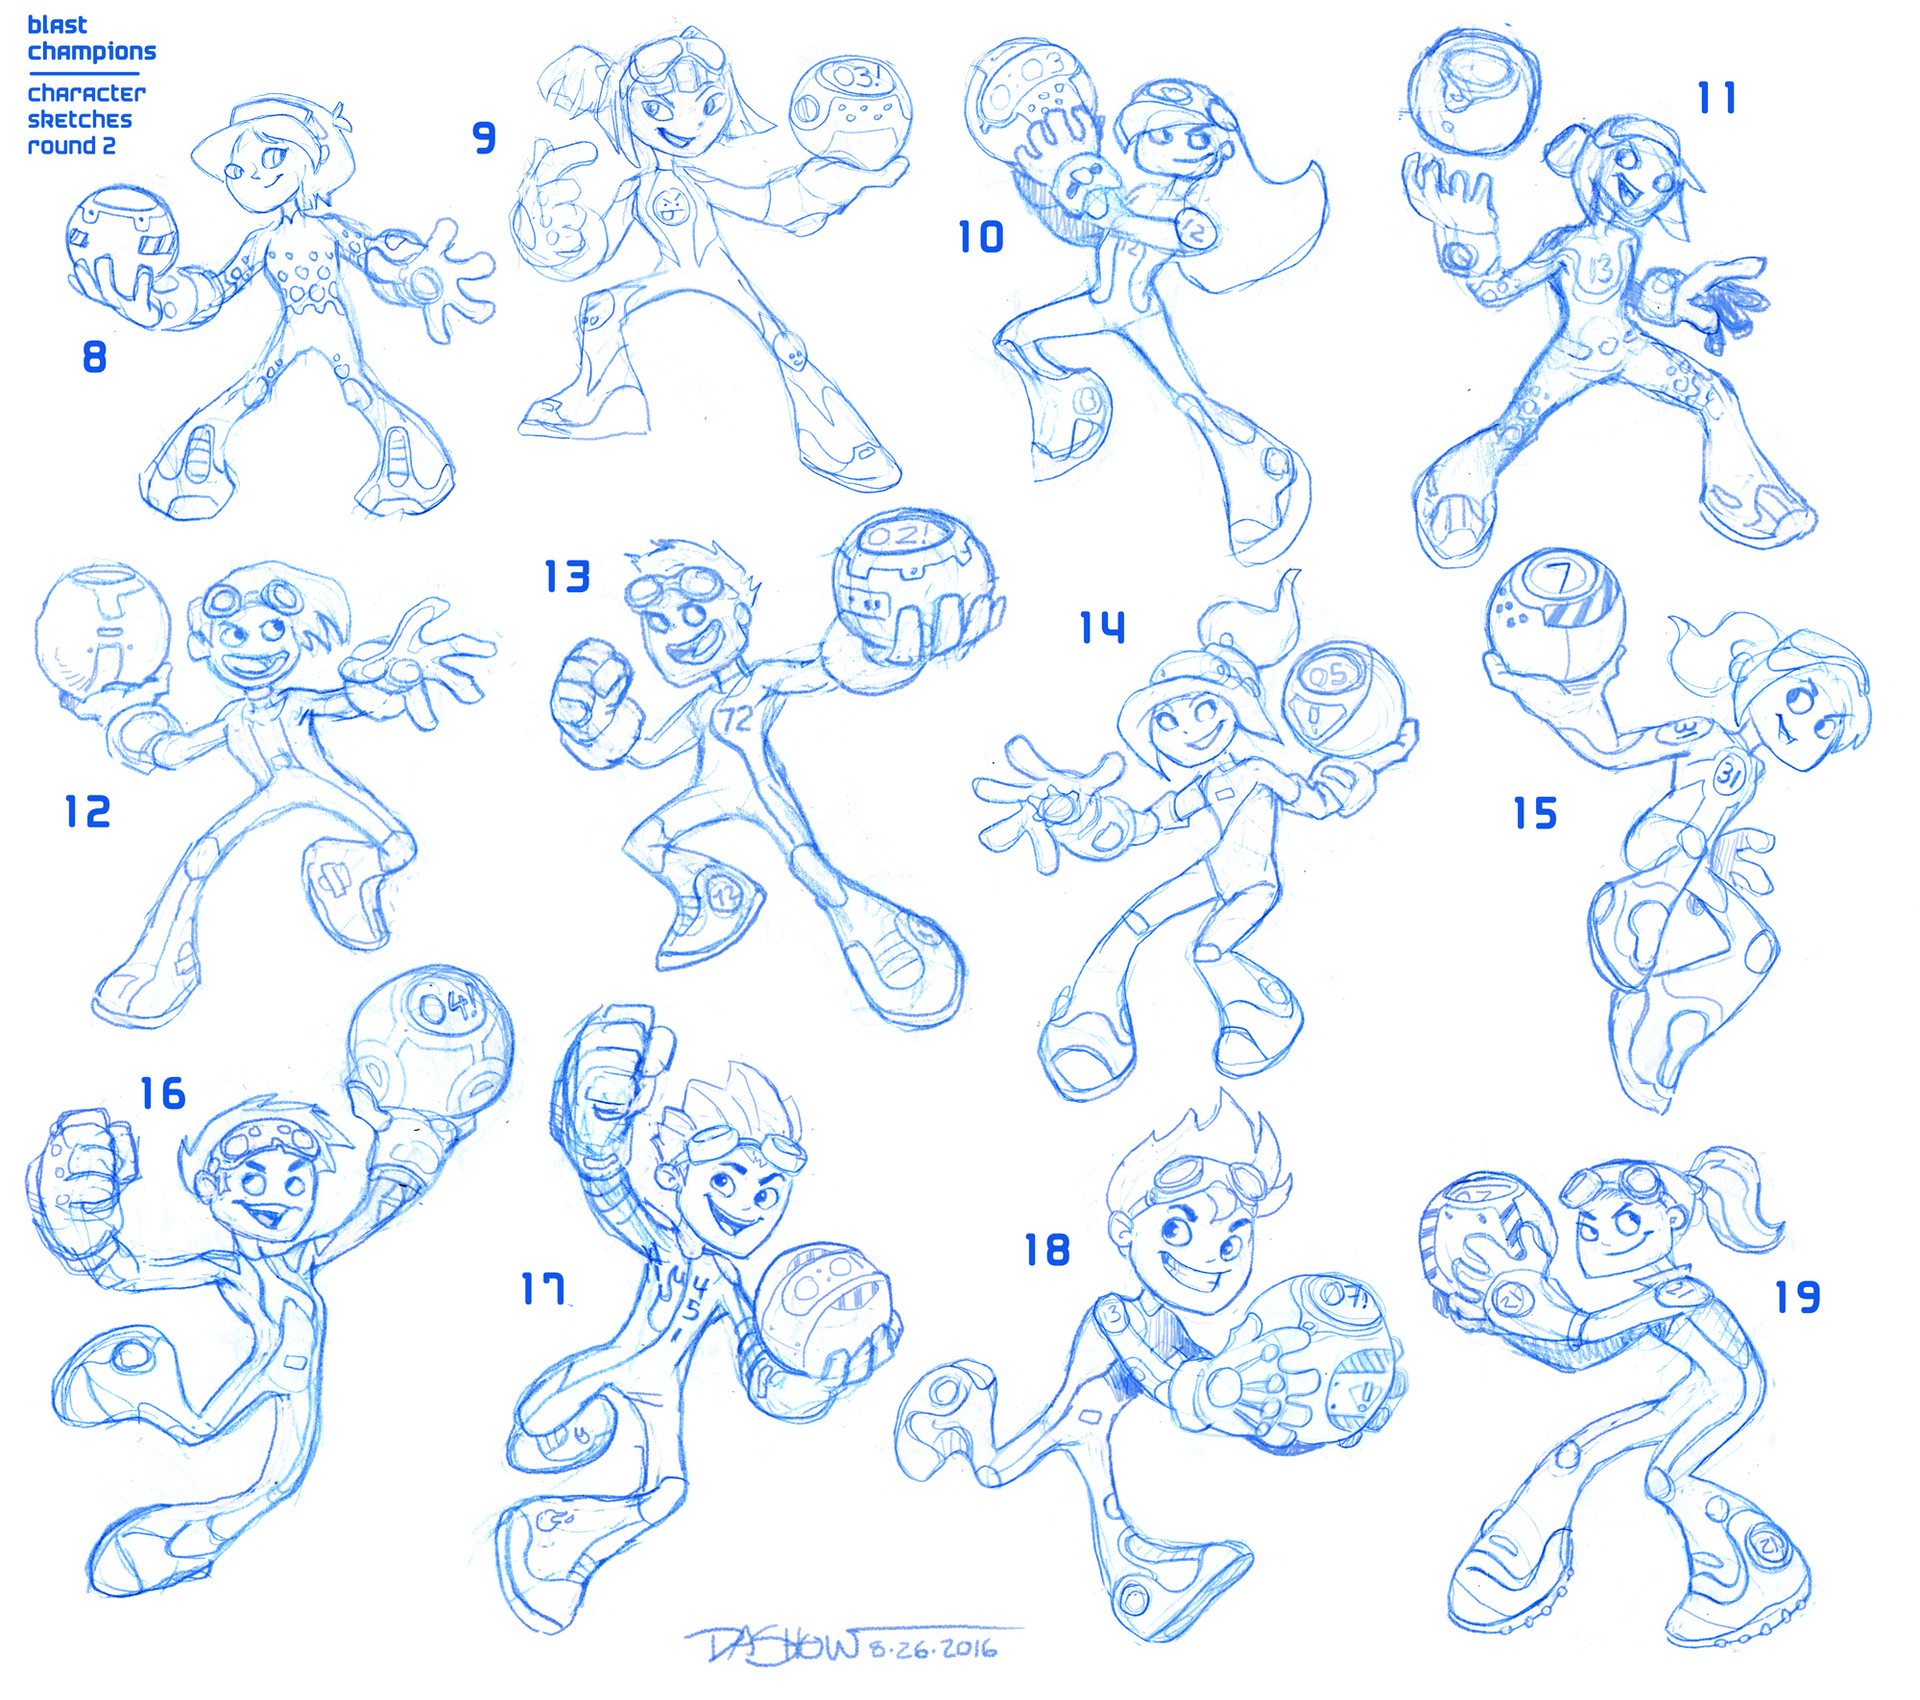 Michael dashow bc character sketches 02